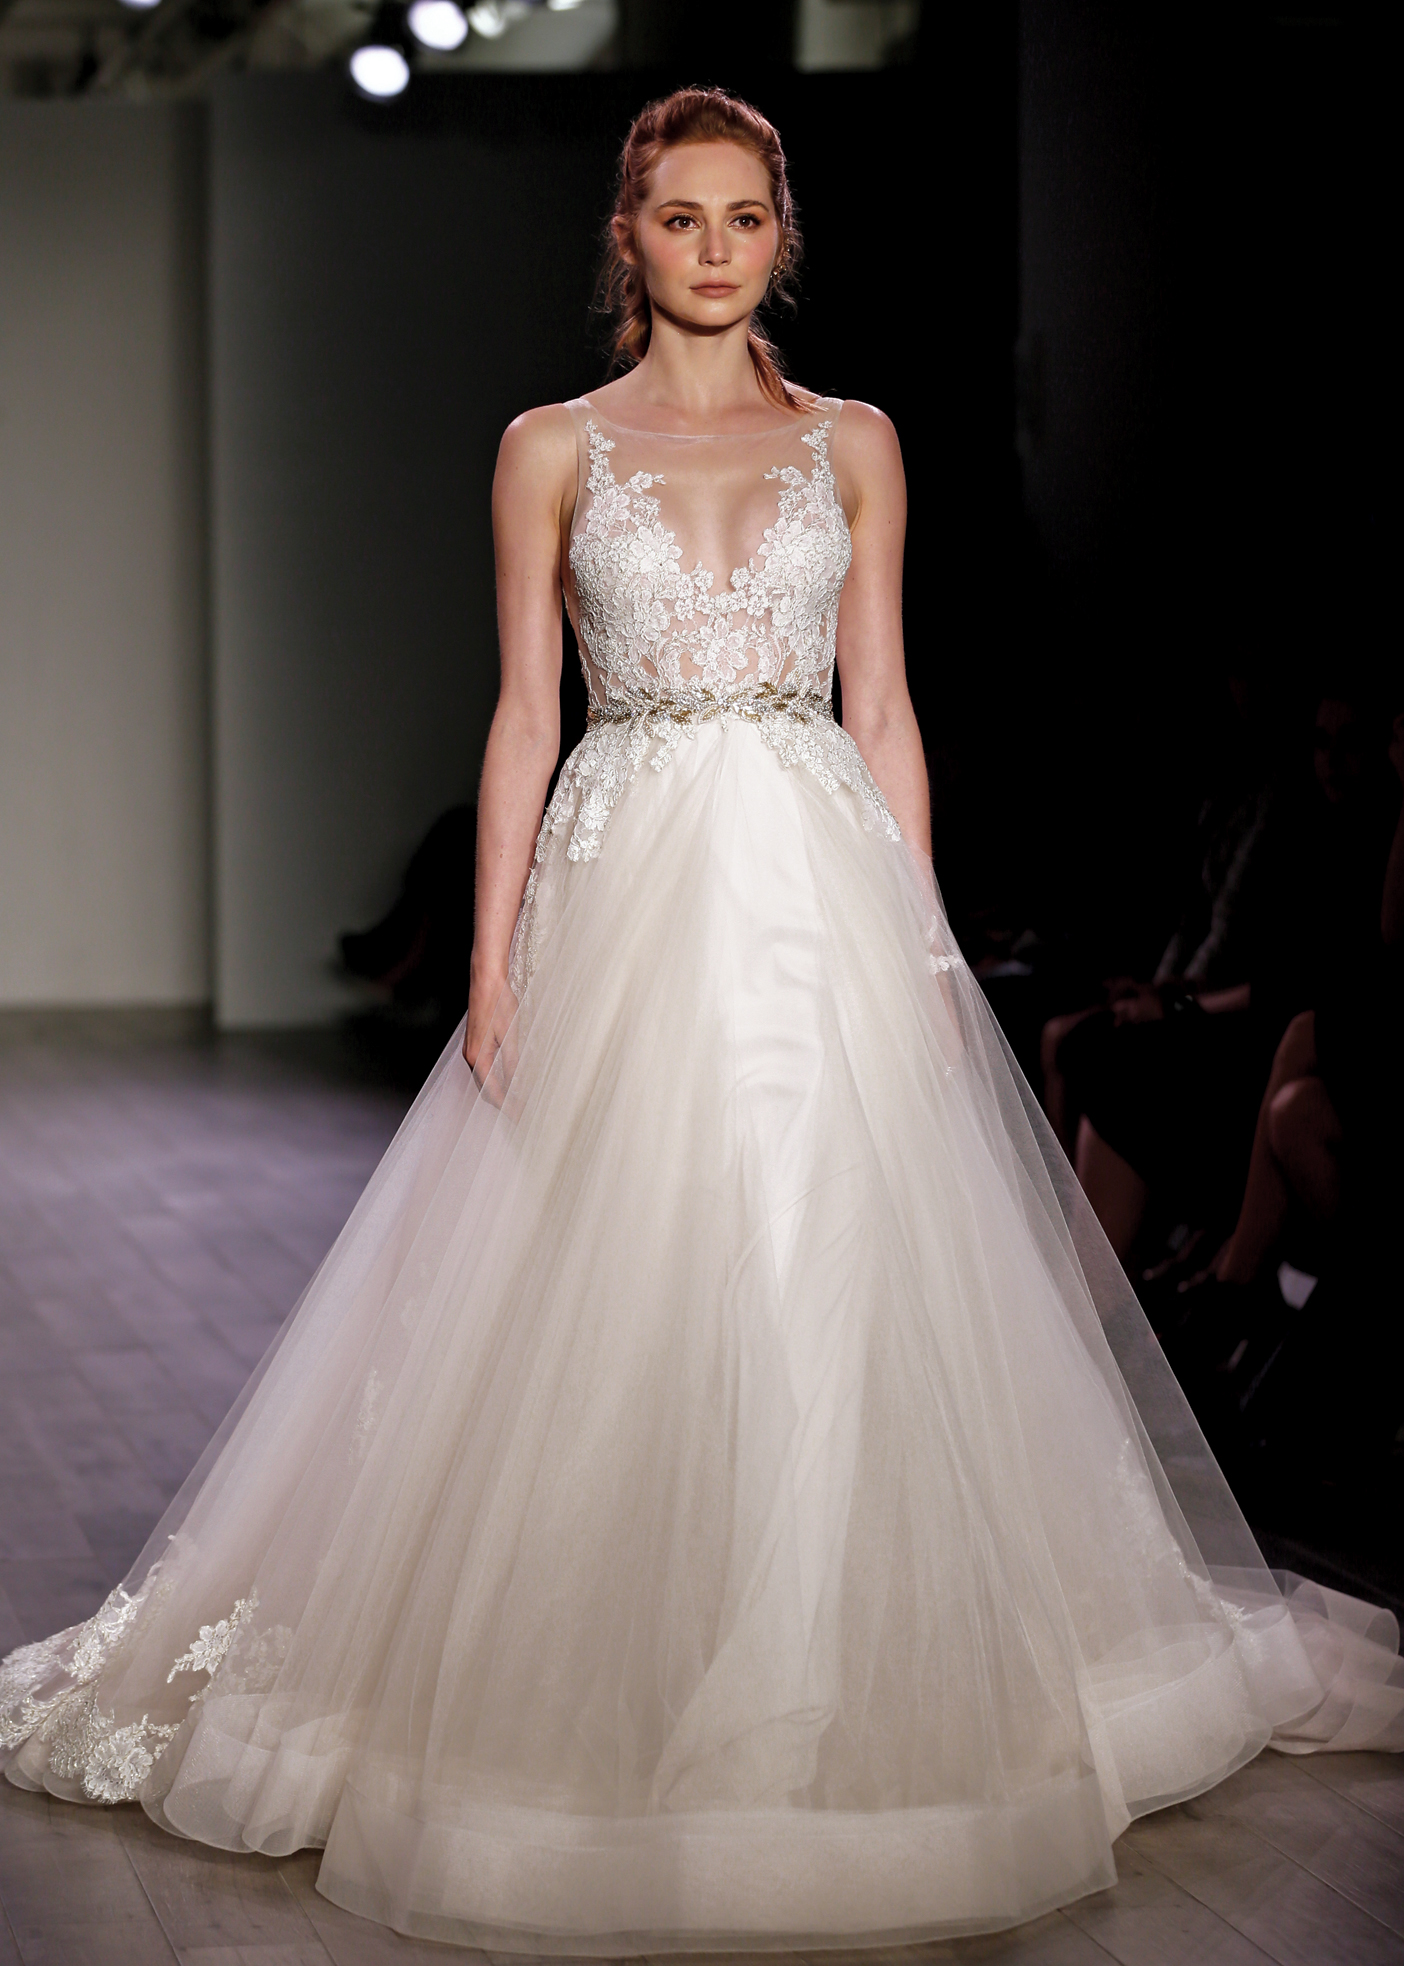 Used Wedding Dresses For Sale | Page 1 | BravoBride